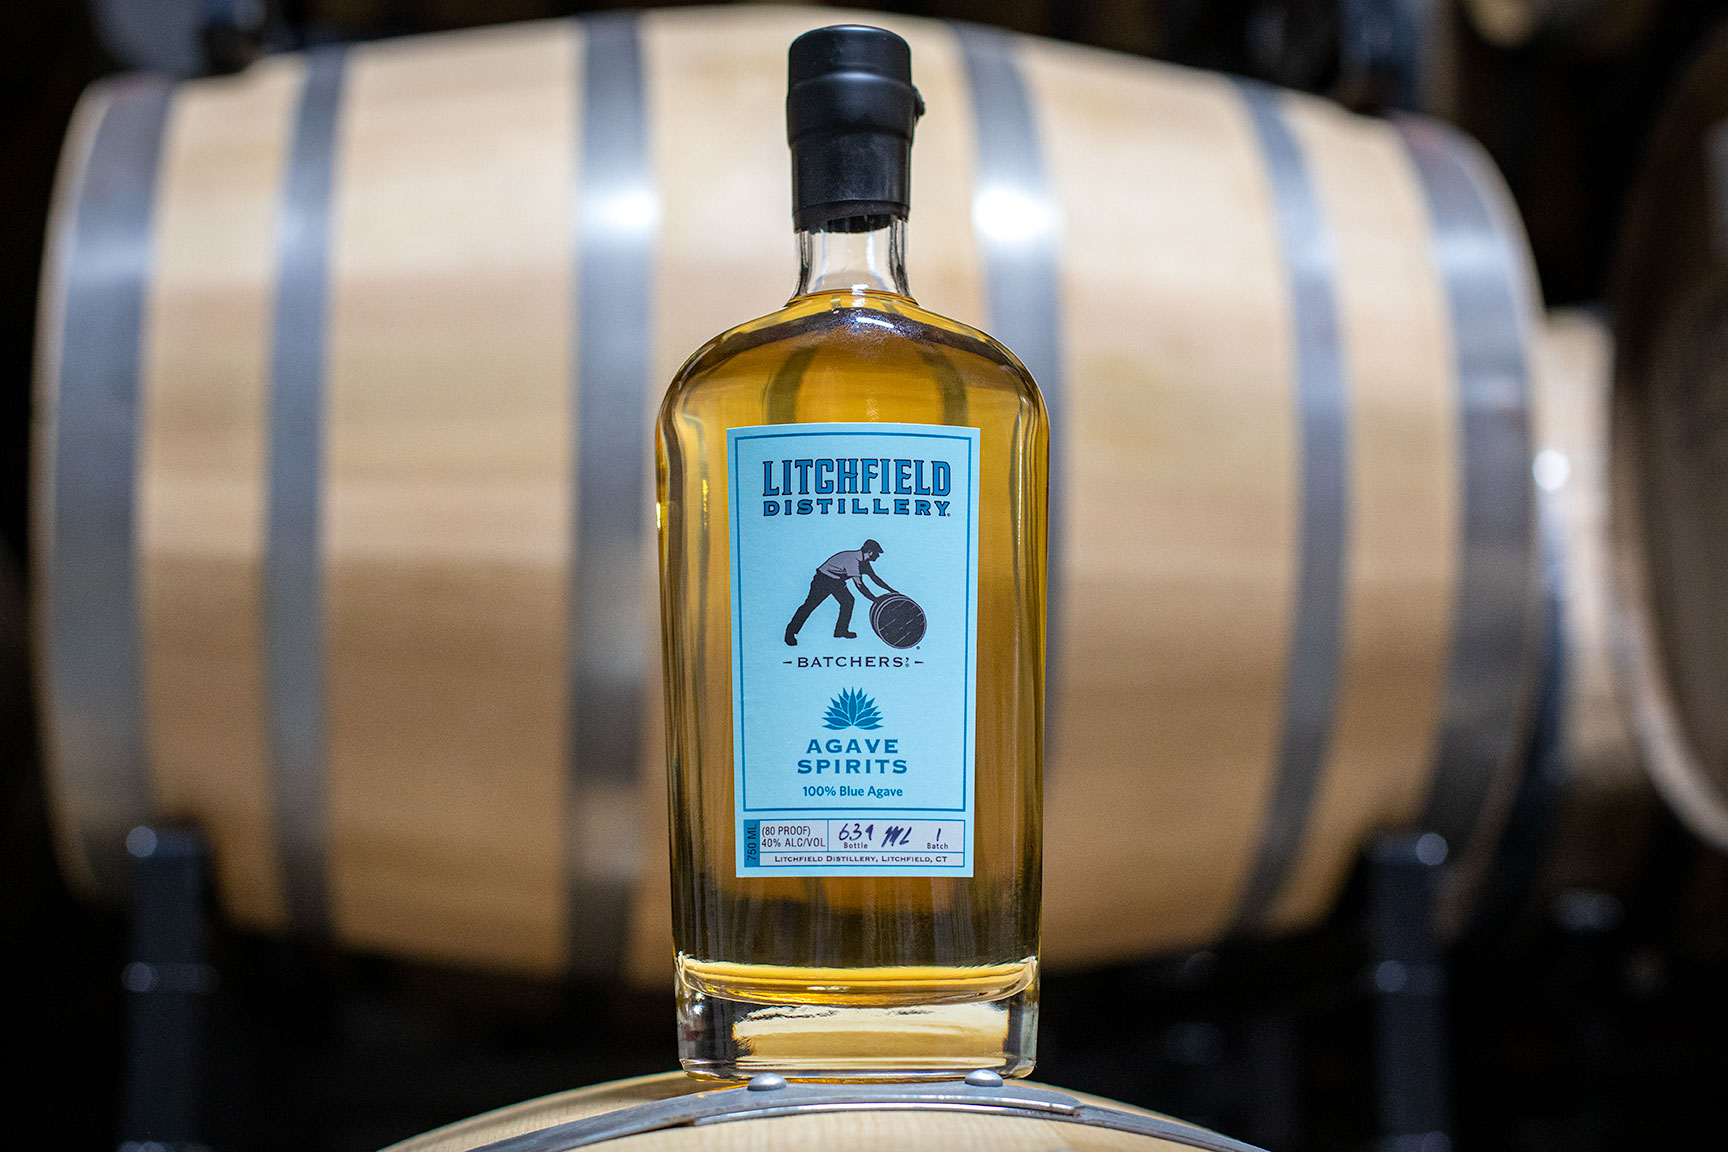 Litchfield Distillery Adds Agave Spirits to Lineup